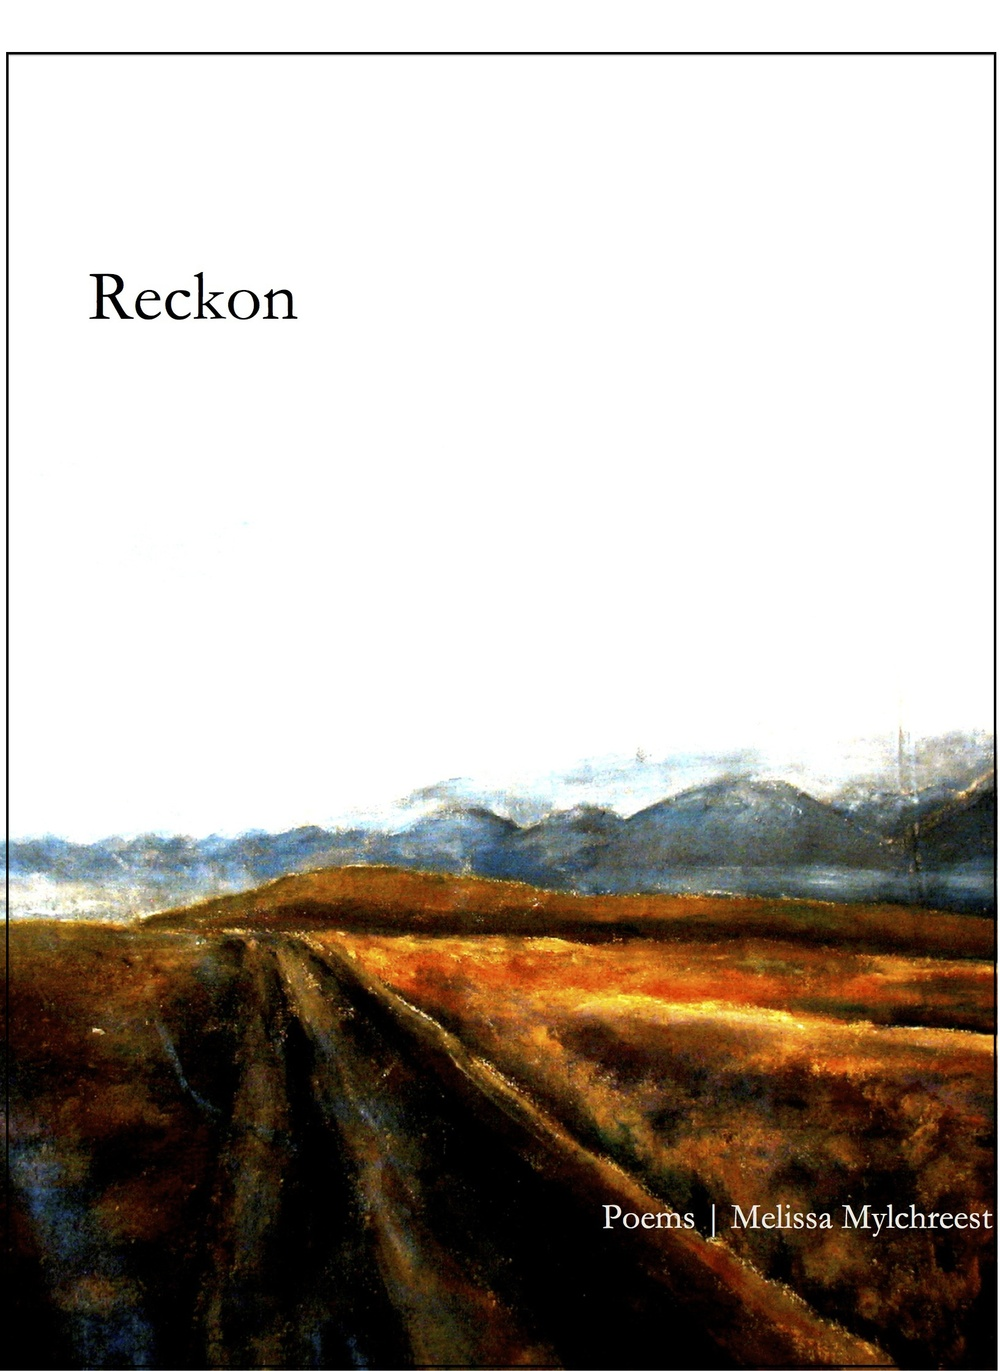 Reckon , 2013, chapbook. Winner of the Merriam-Frontier Award. Limited availability; contact me for copies.